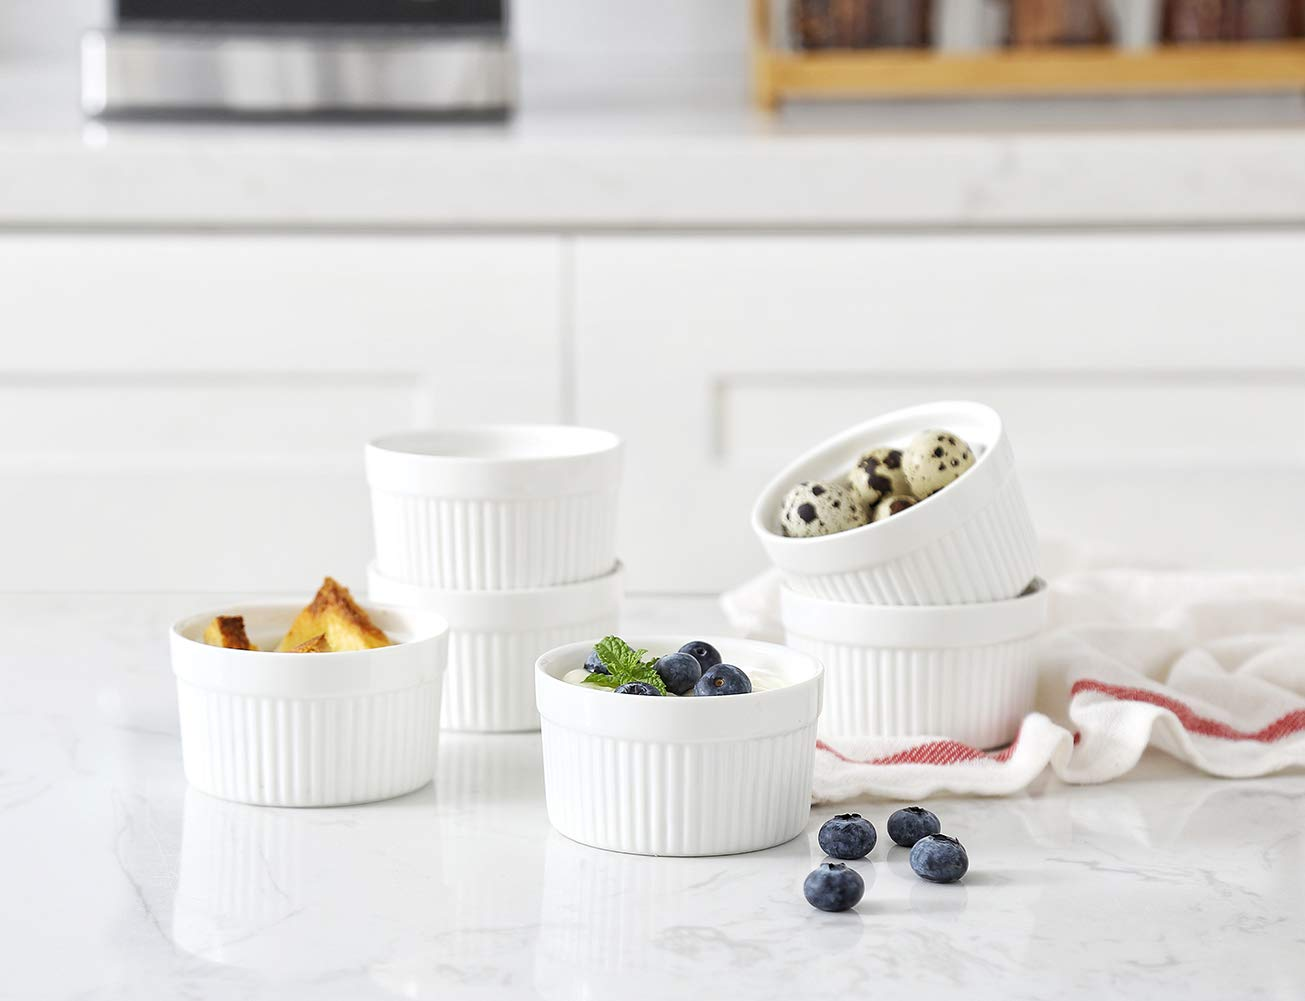 6 oz Ramekin Set of 8 Serving Bowl for Souffle Creme Brulee and Dipping Sauces Porcelain White by LAUCHUH (Image #6)